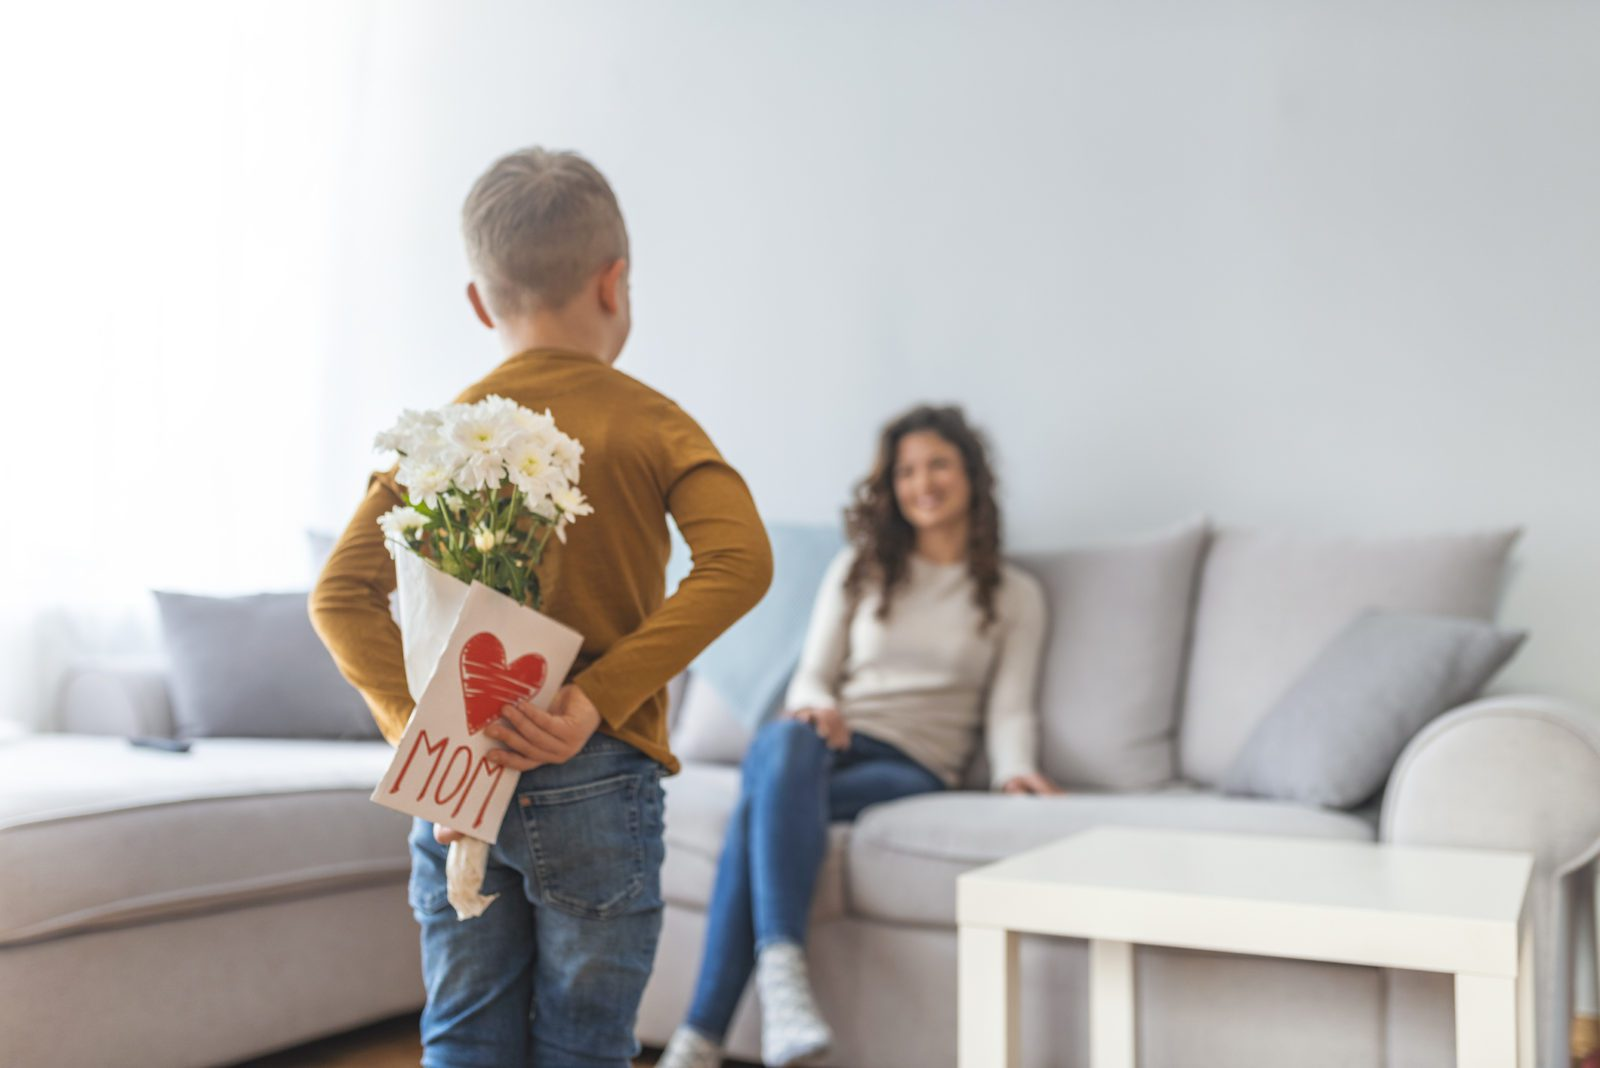 Happy mother's day! Child boy gives a bouquet of flowers and gift